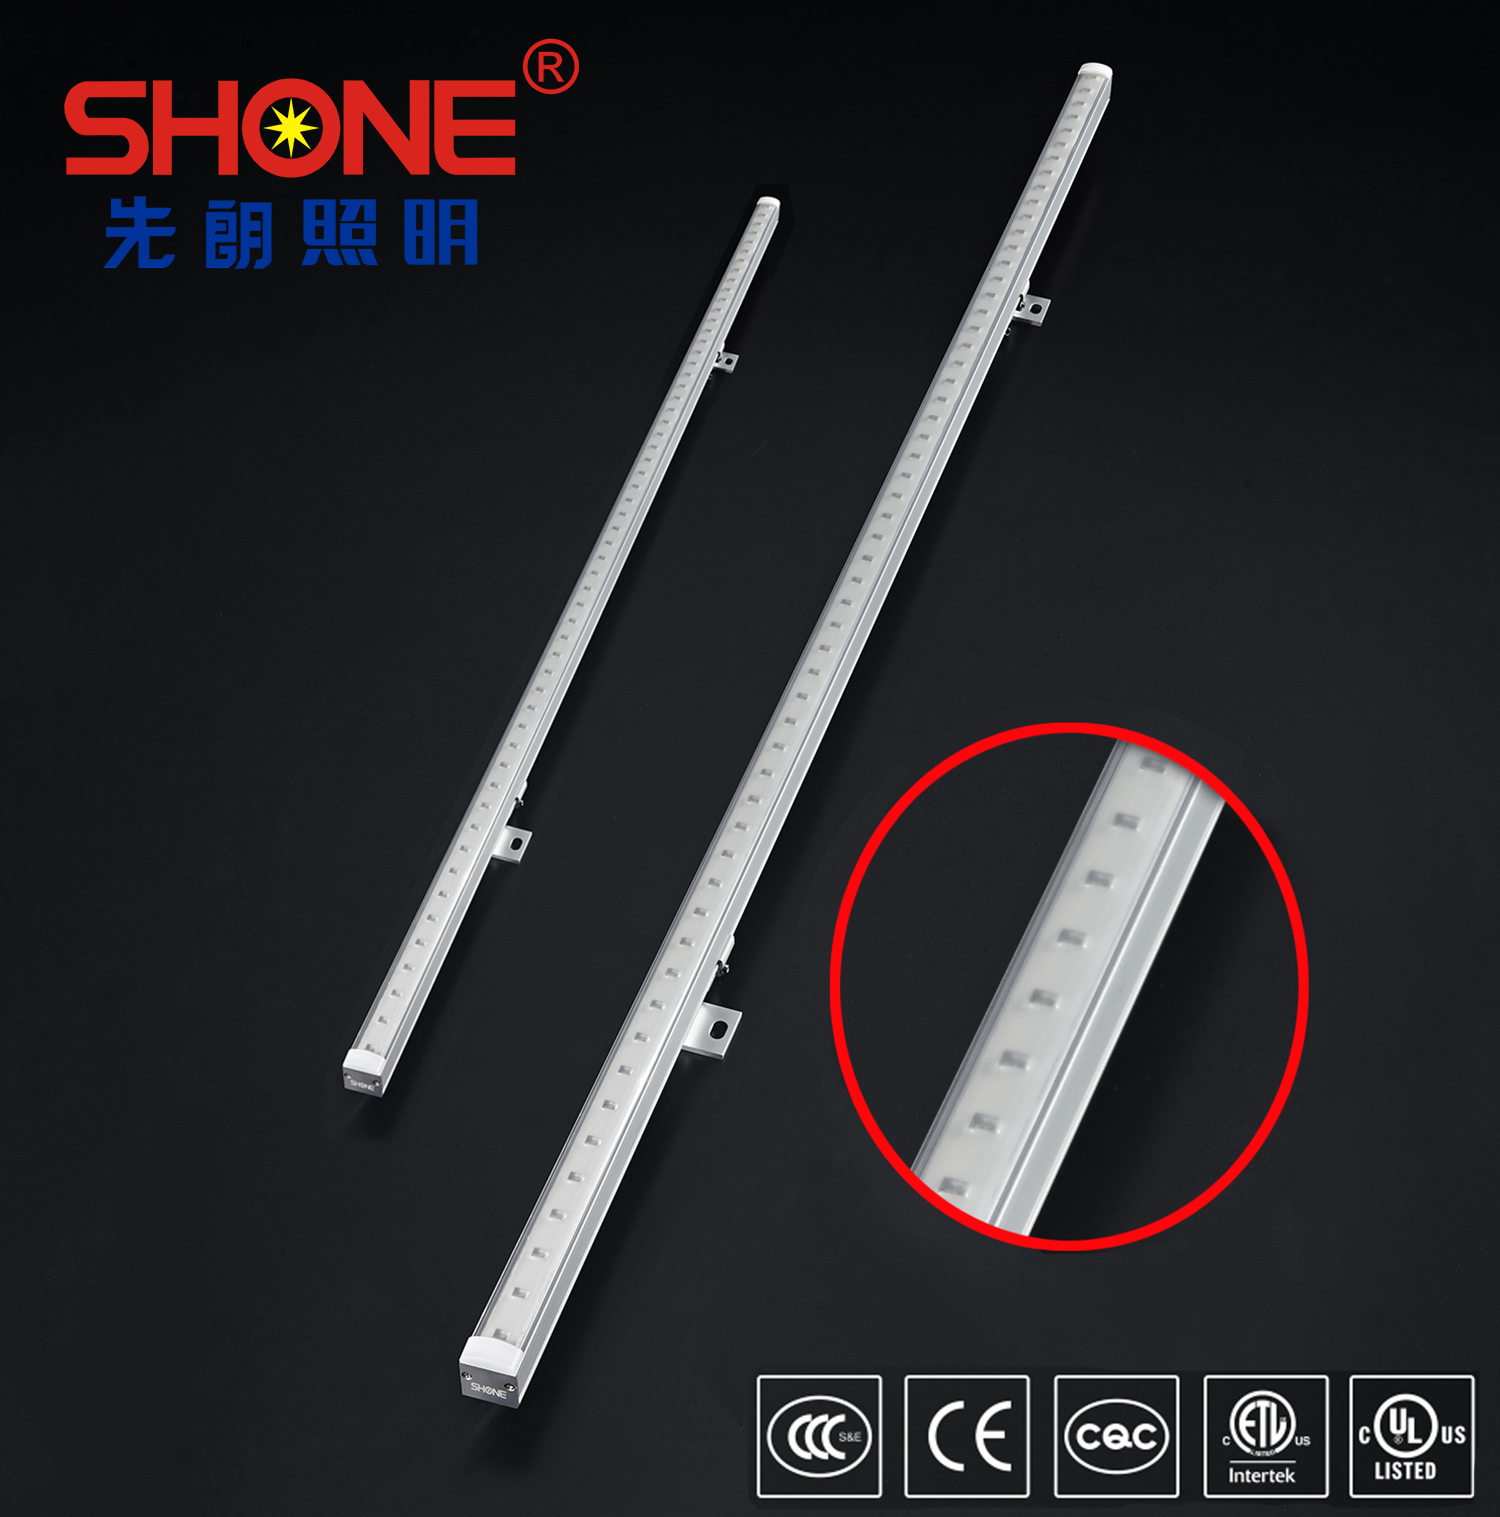 Shone Lighting 20x30 LED Linear Light Wall Washer with CE ETL ROHS IP66 for Architechture Lighting